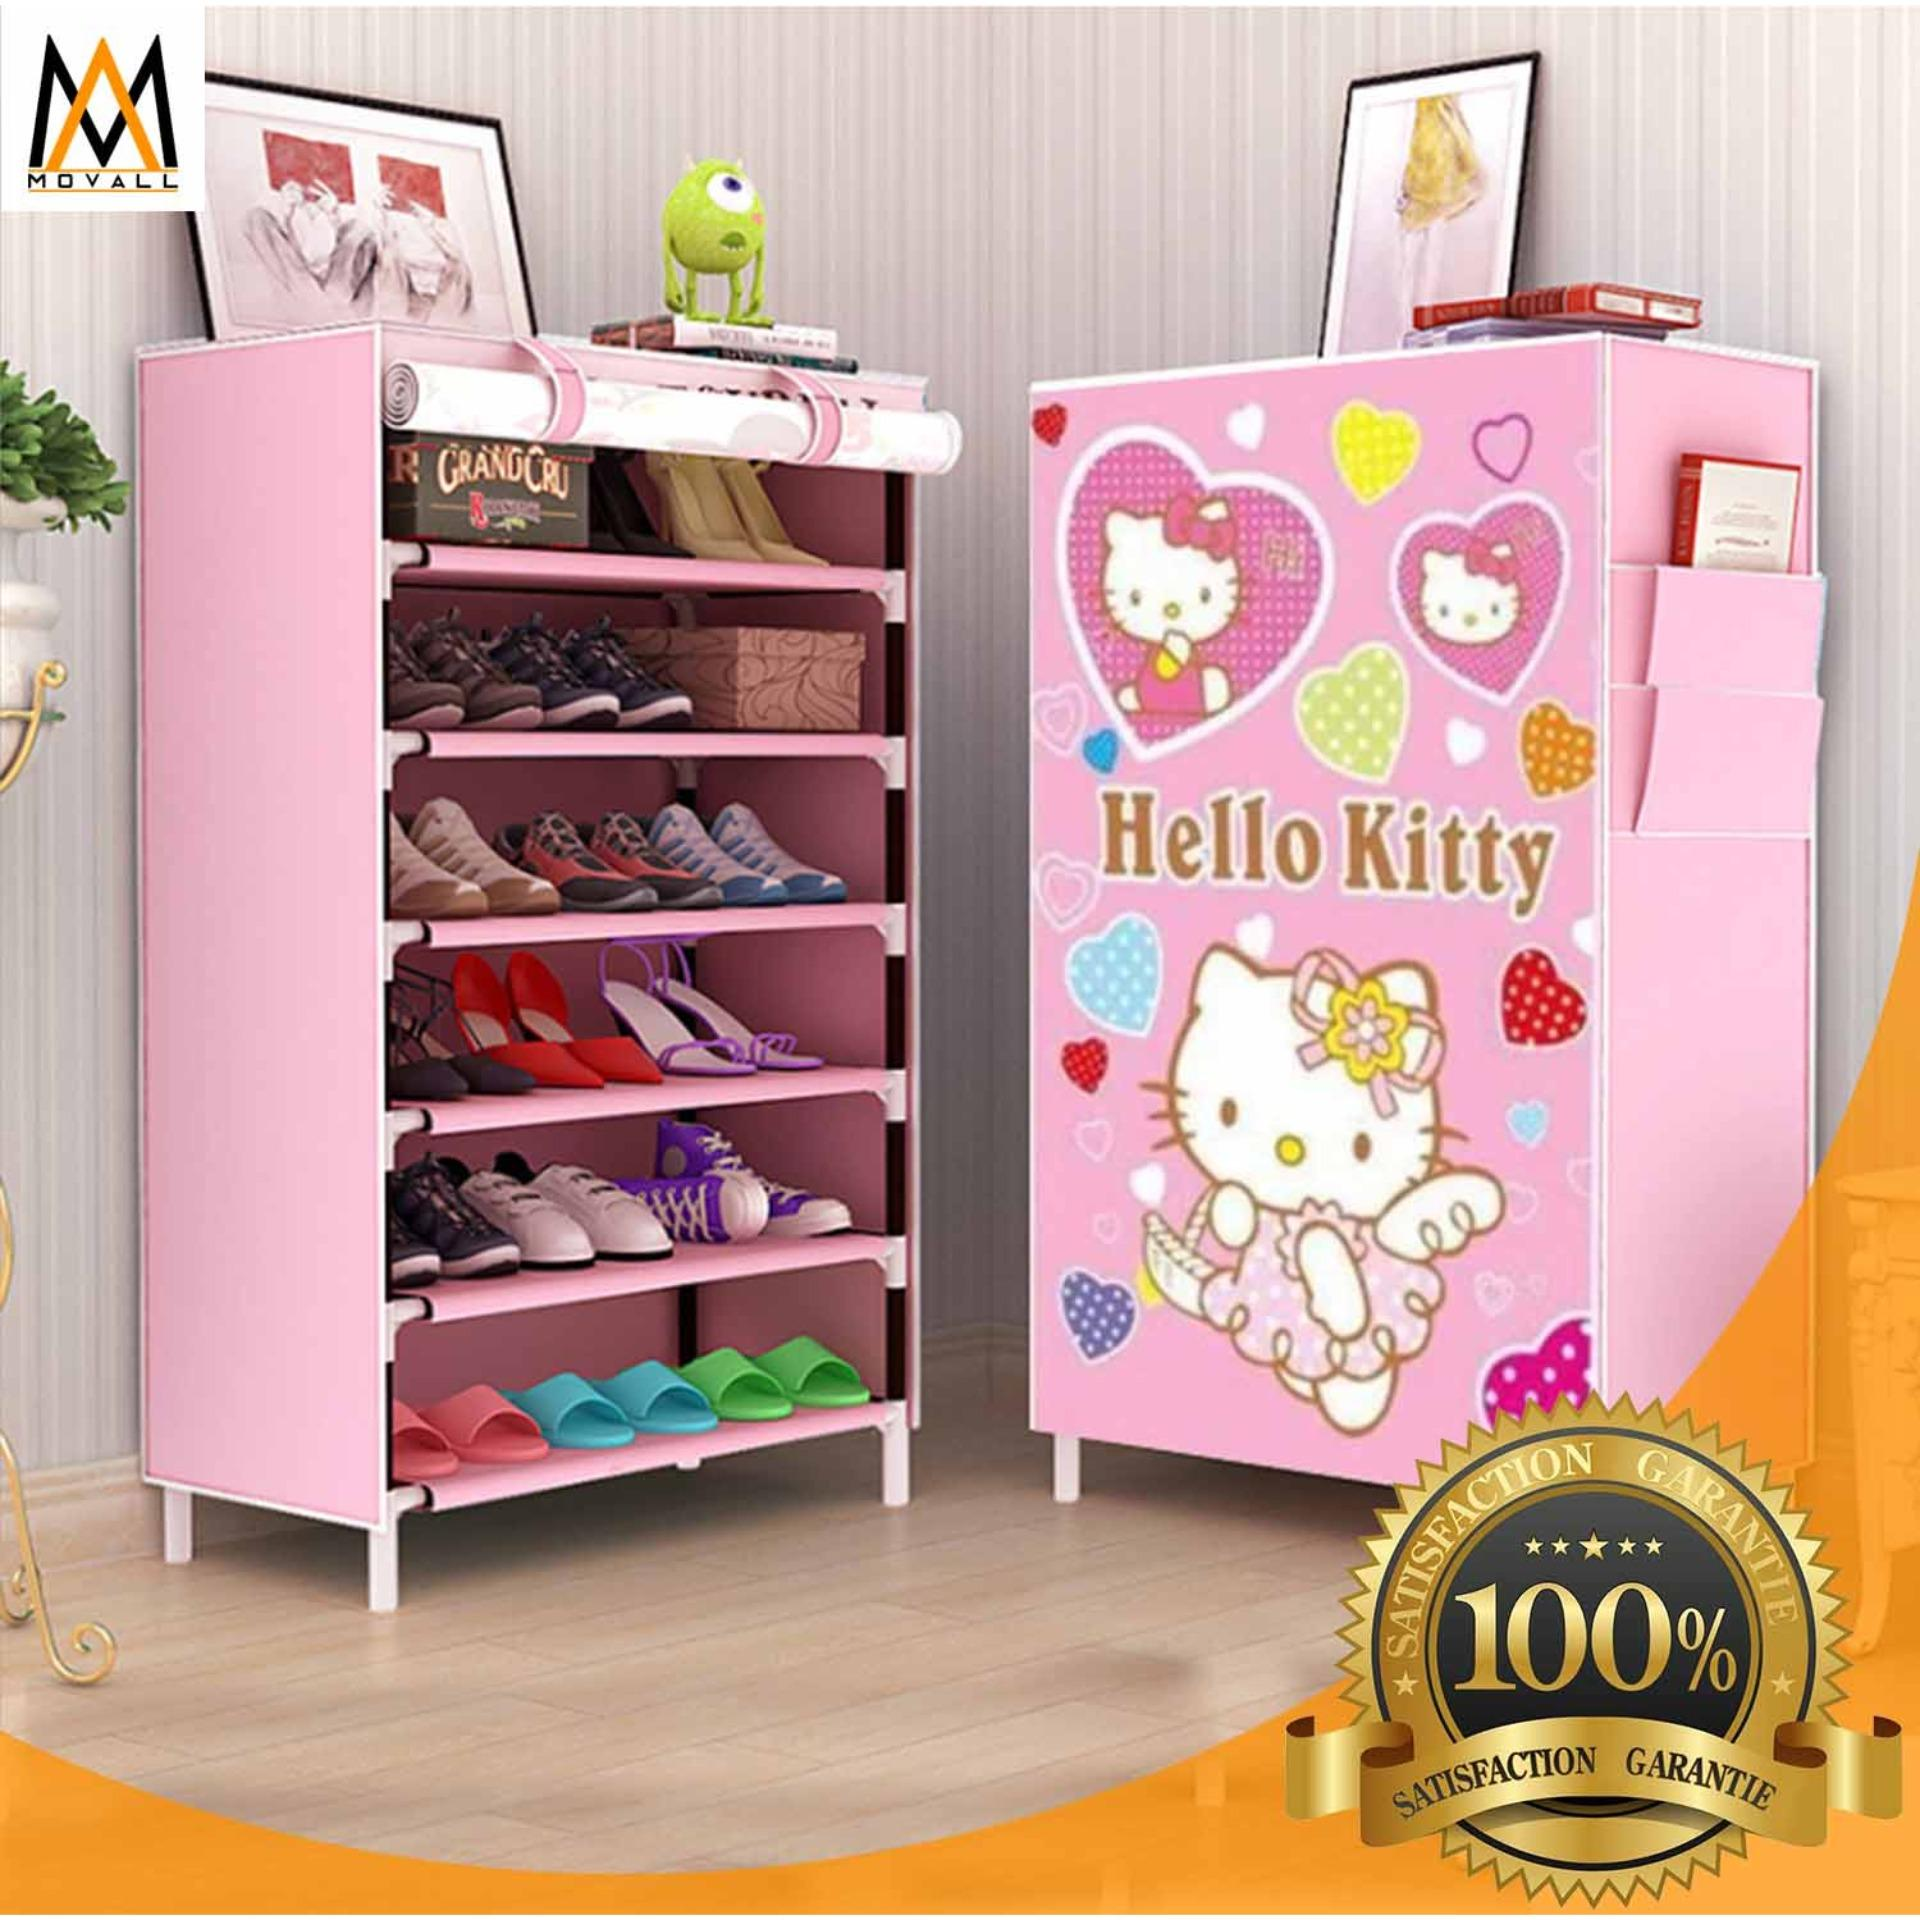 Hk 6 Tier Shoe Rack Storage 8076 (pink) By Movall.